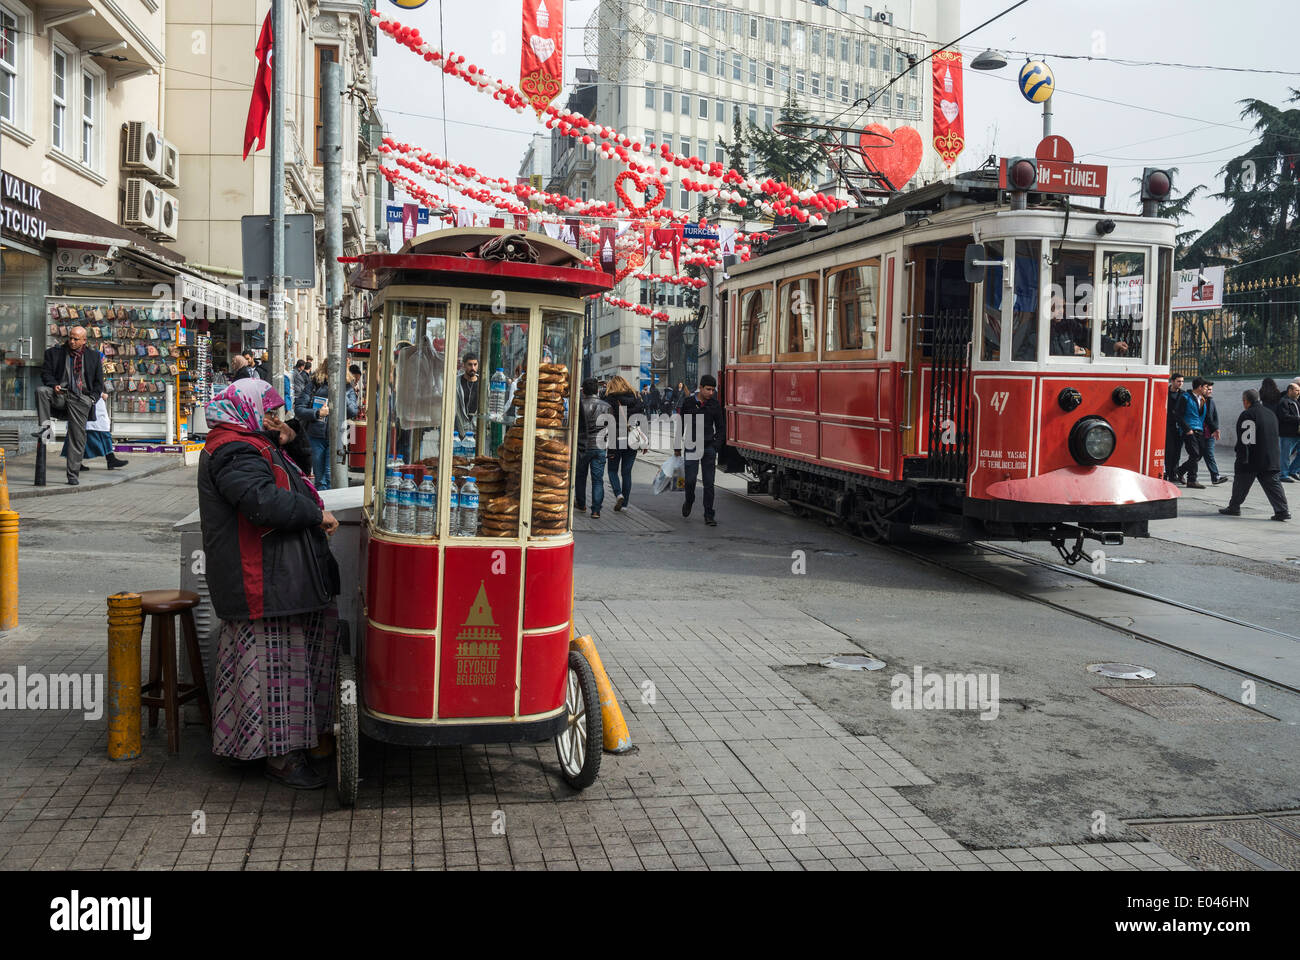 Simit bread vendor and tram in Istiklal Caddesi, Beyoglu, Istanbul, Turkey, - Stock Image